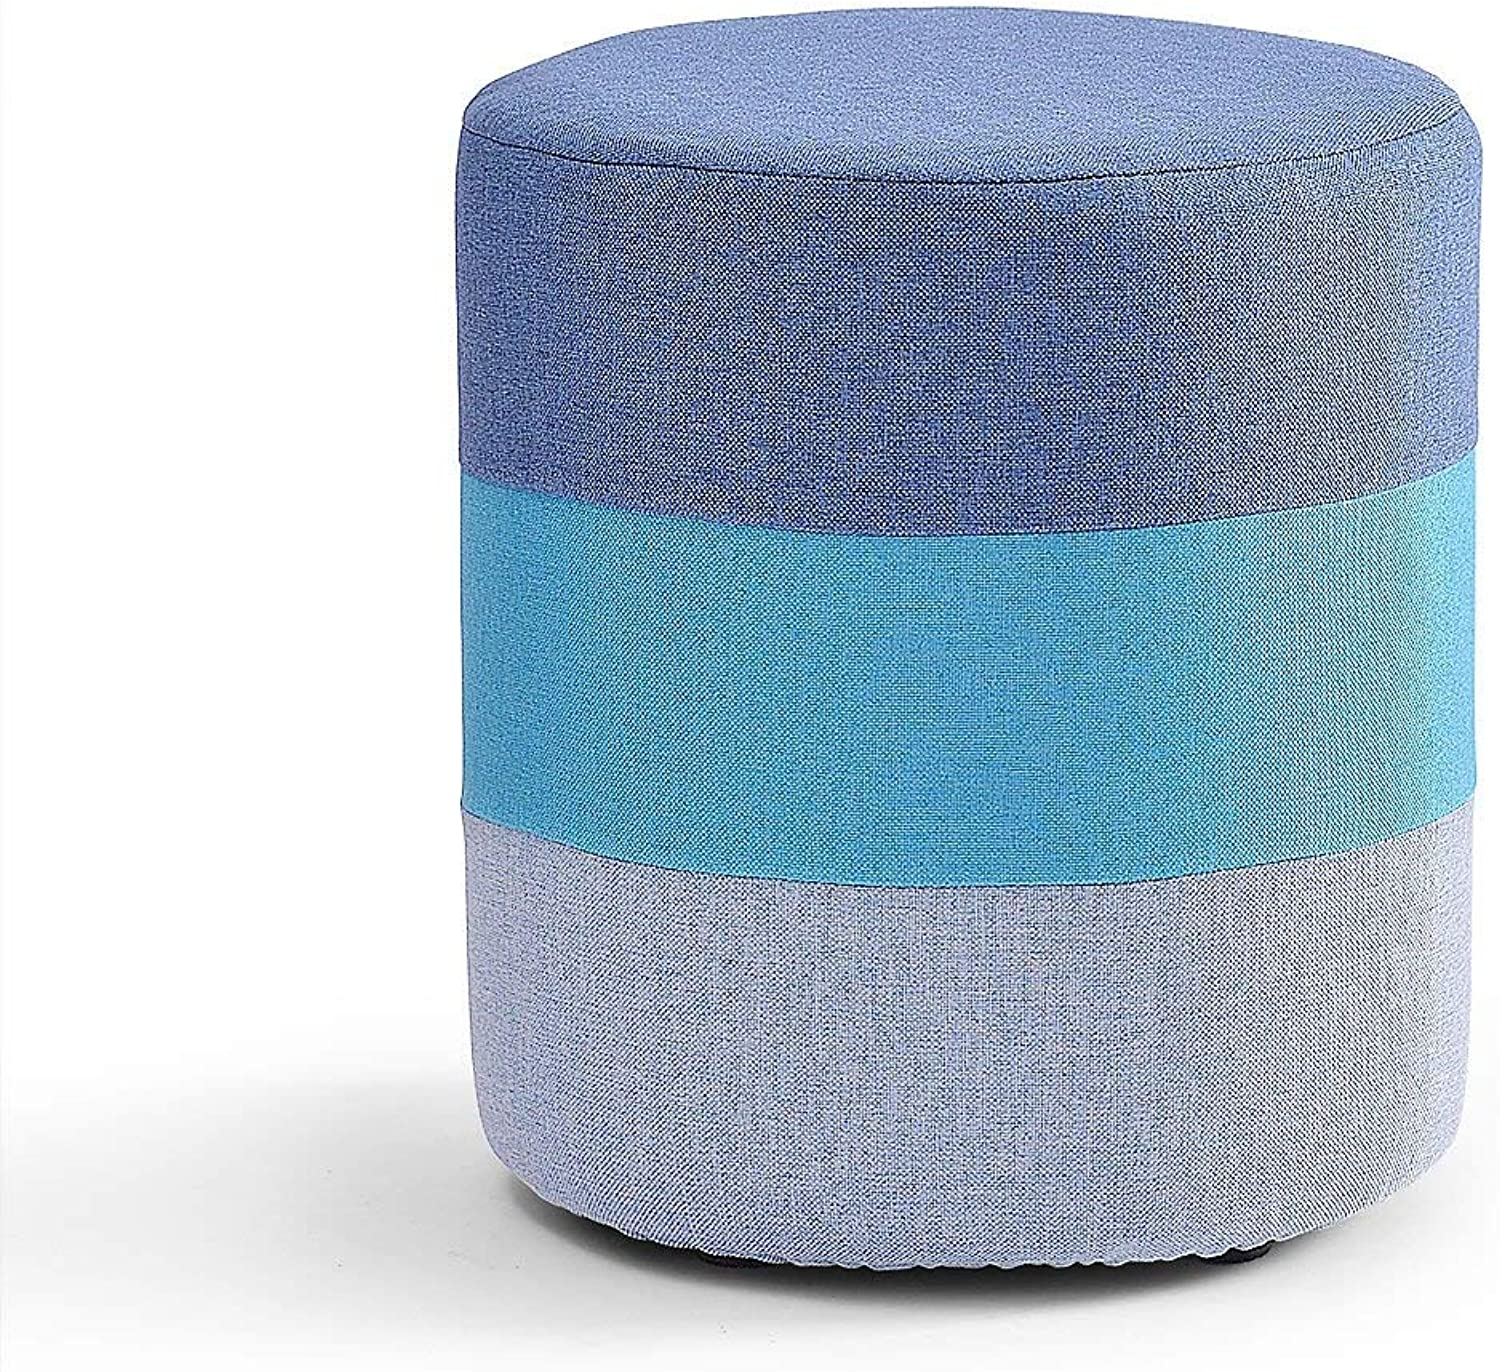 GJD Stylish Solid Wood shoes Bench Low Stool Simple Stool Makeup Stool Fabric Round Pier Sofa Stool Upholstered Stool,29  35cm (color   bluee)